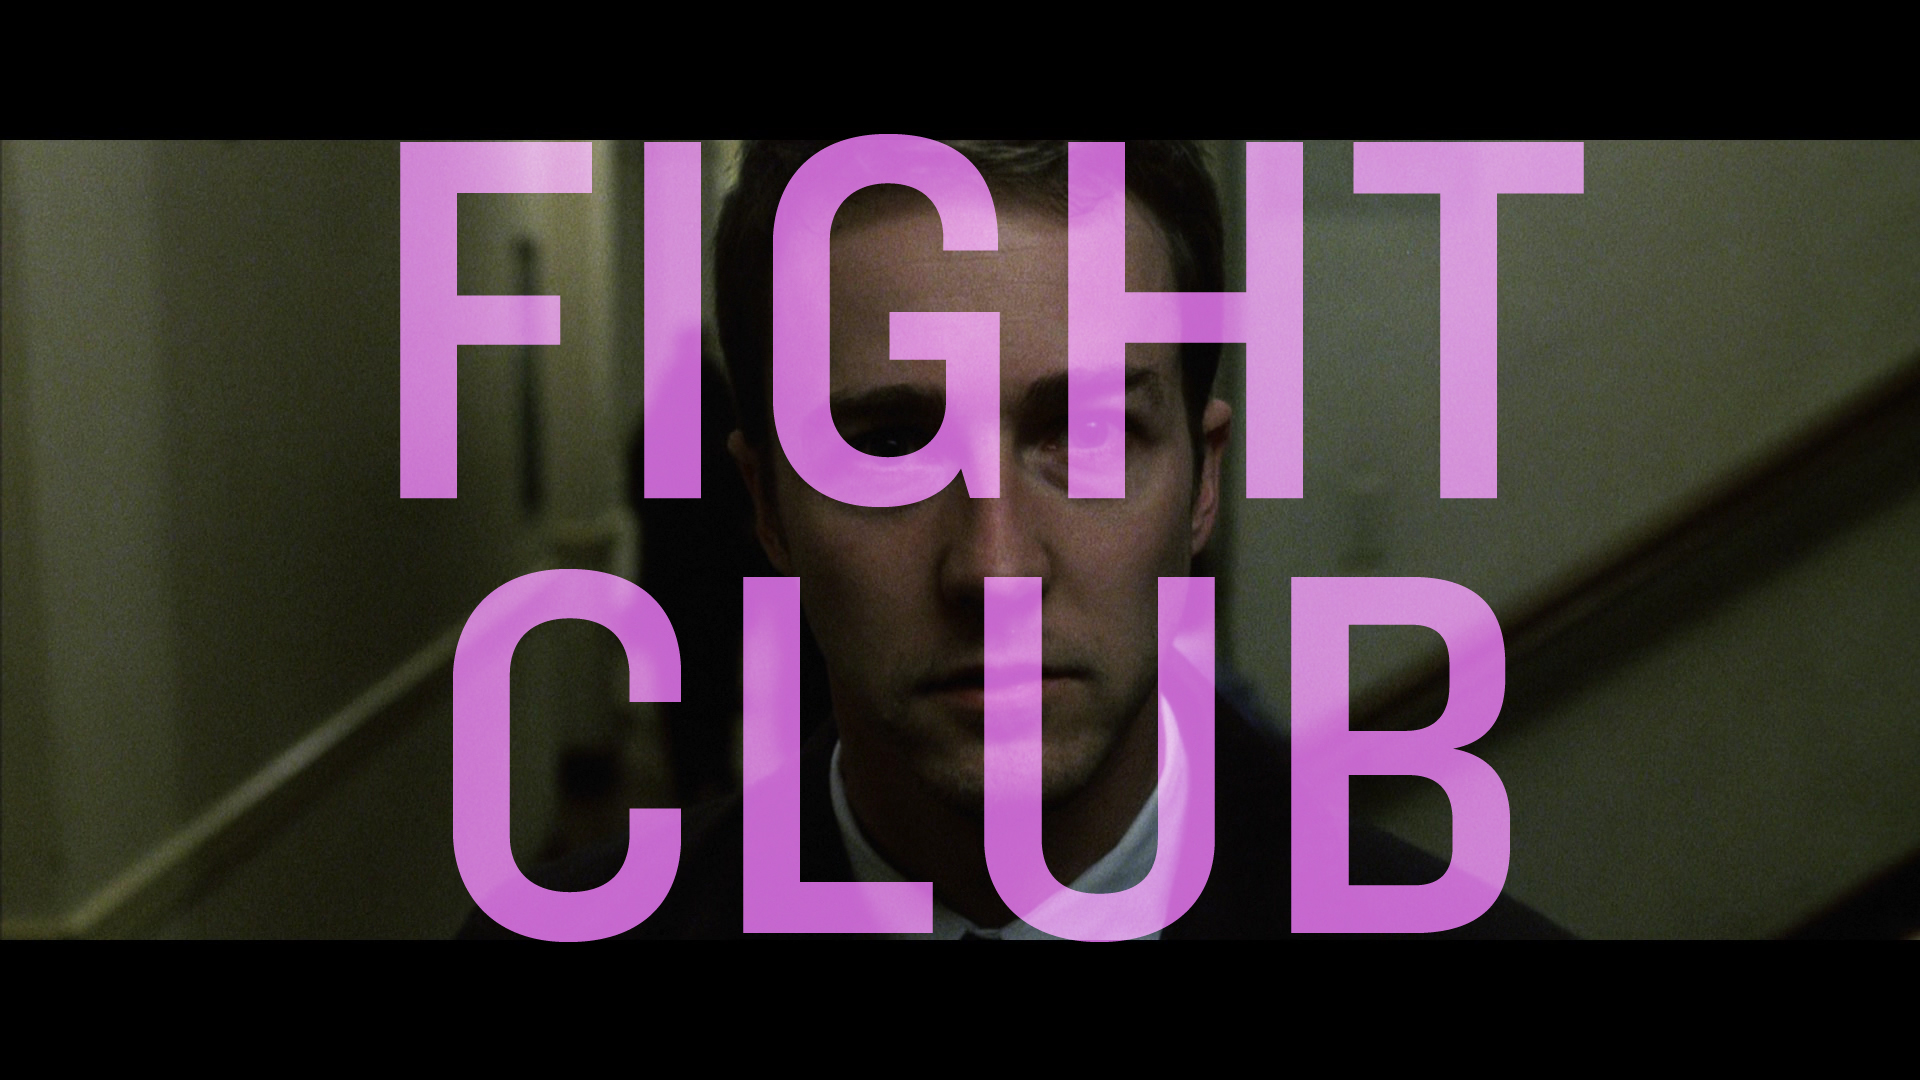 David Fincher - Fight Club